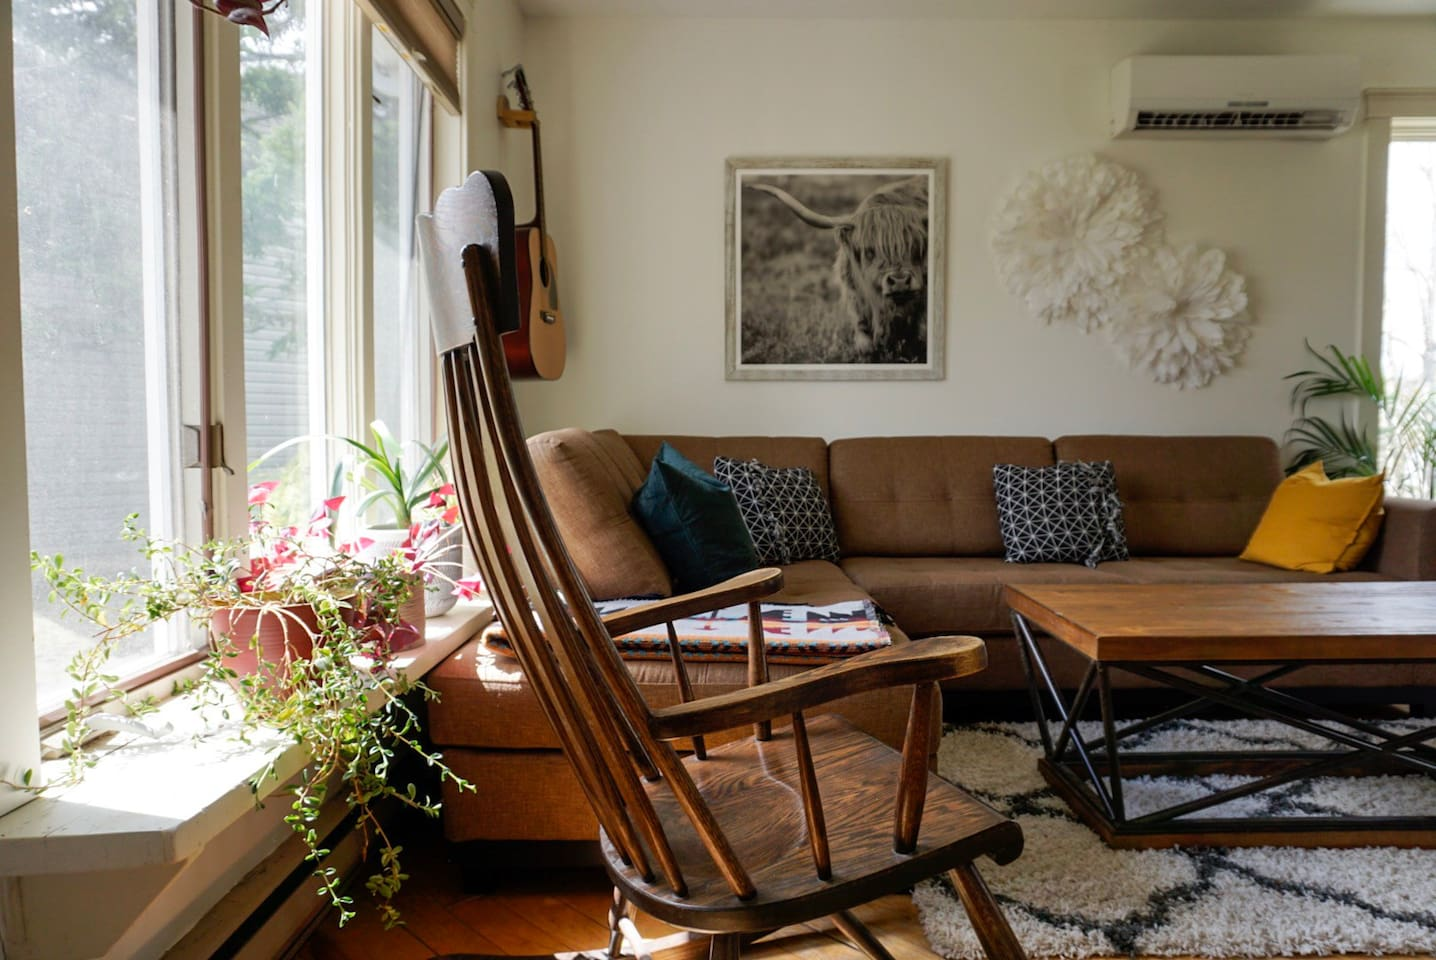 Sitting room main window faces south and receives lots of natural light